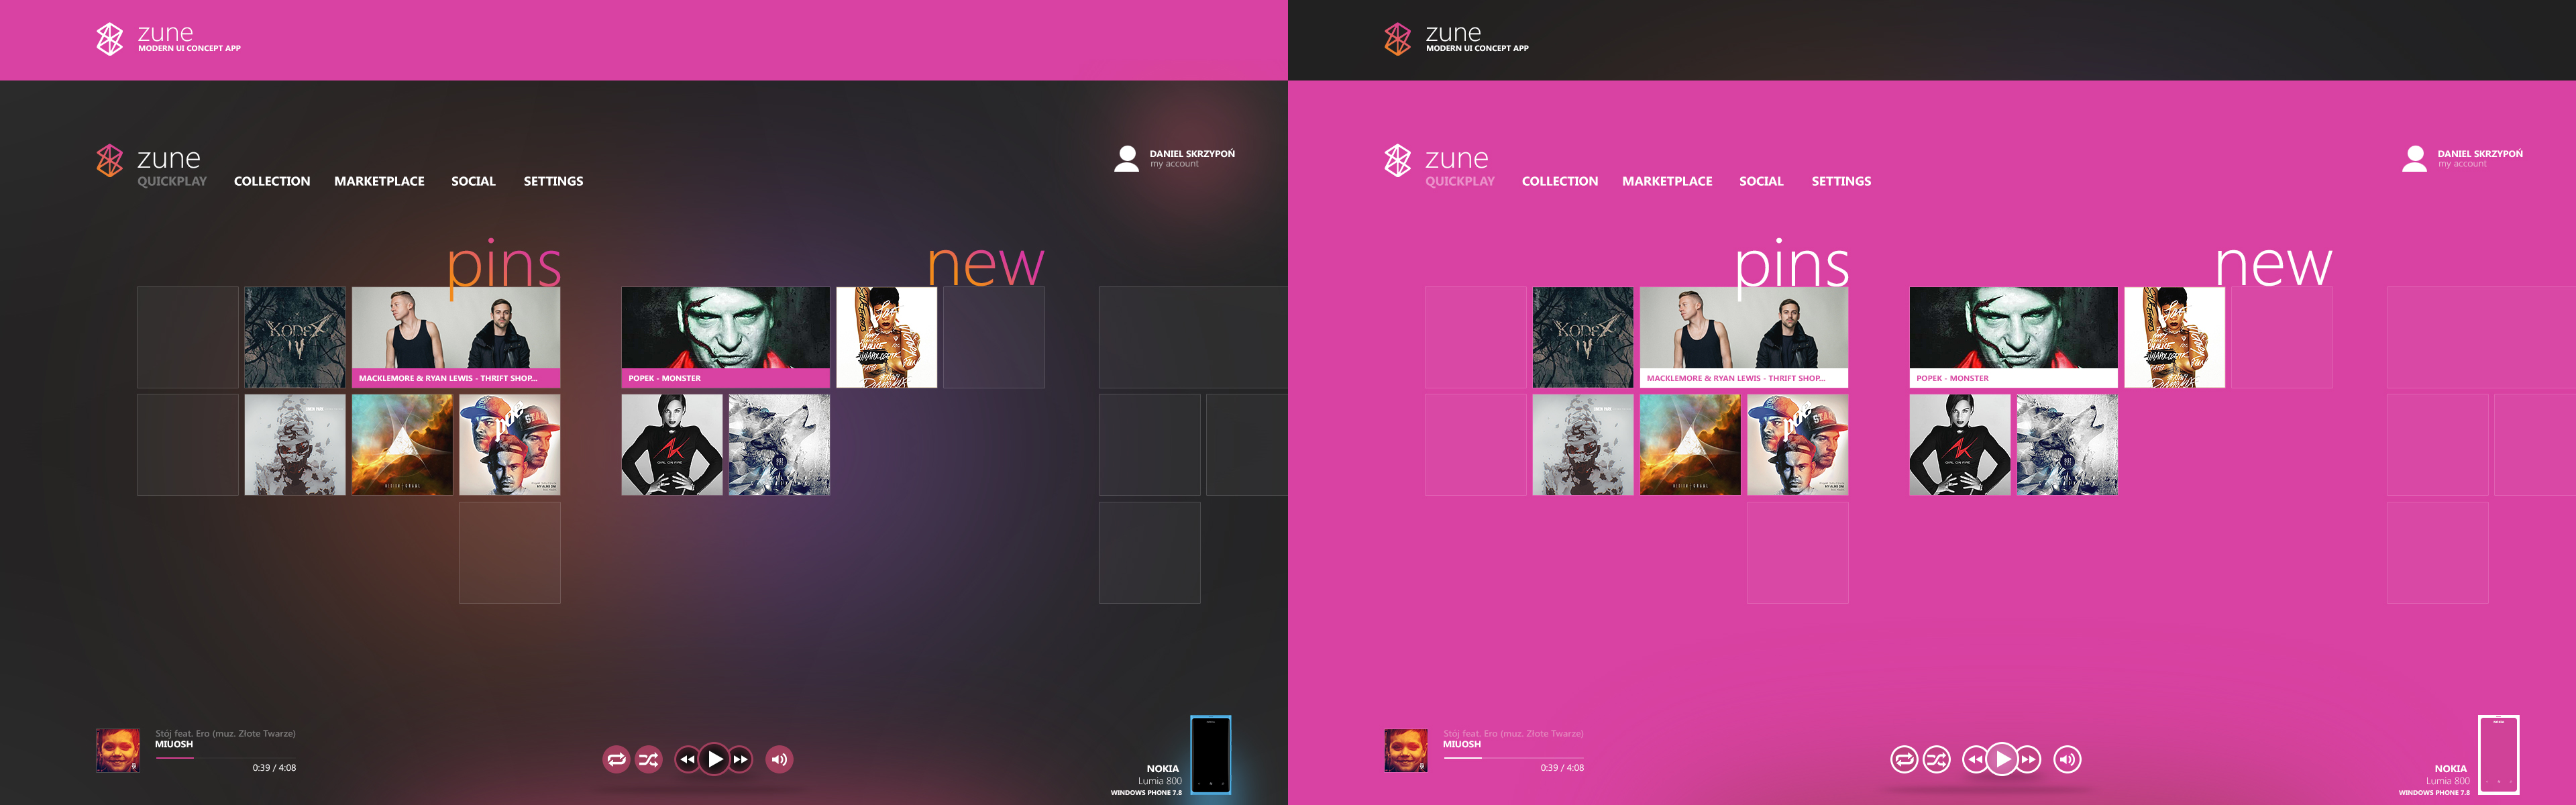 zune music - Concept Modern UI App by danielskrzypon